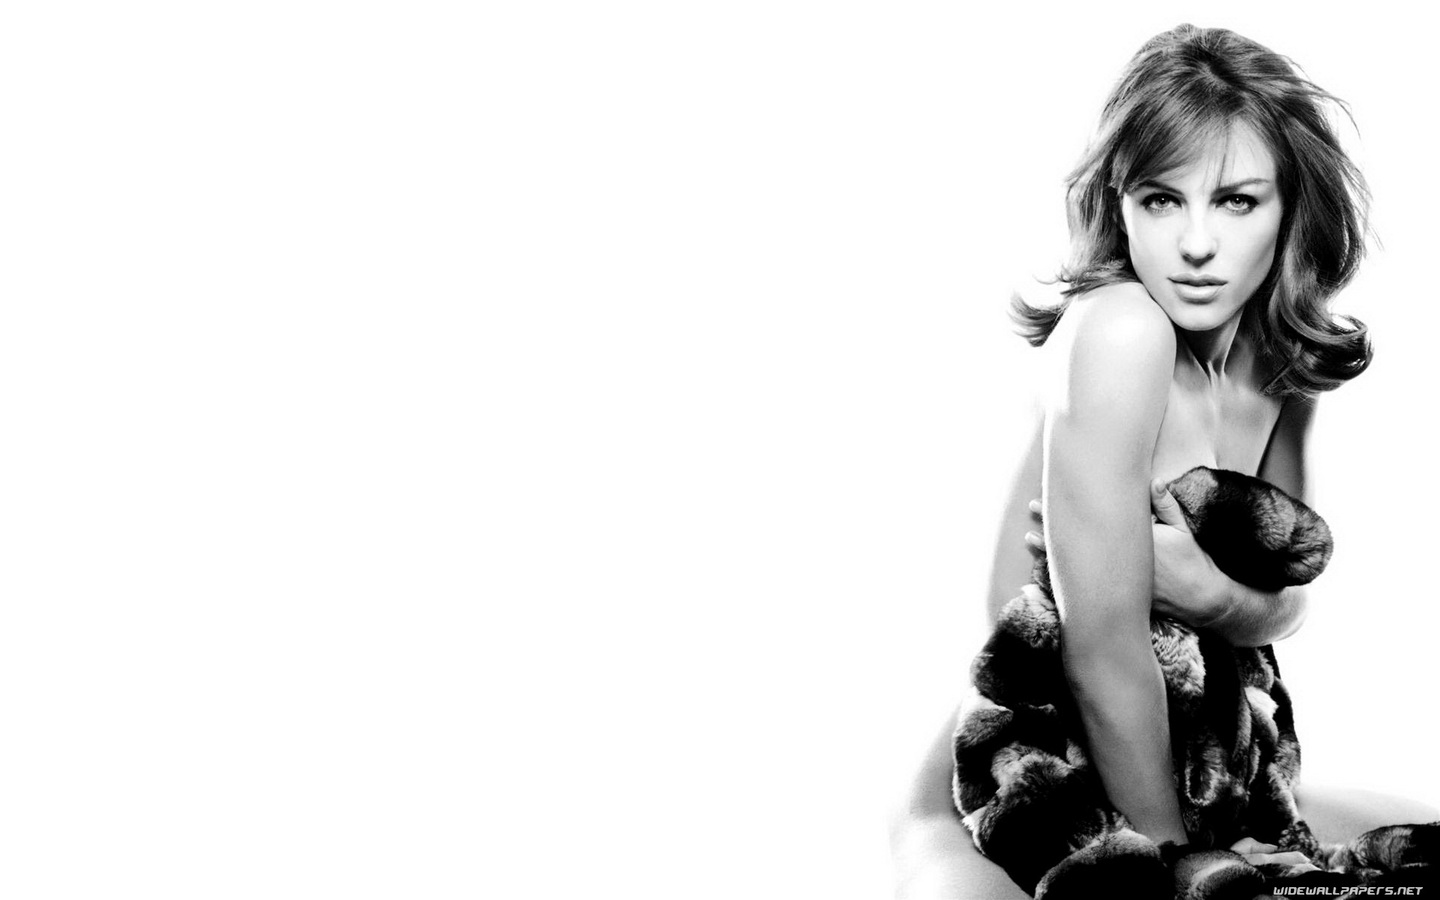 Elizabeth Hurley celebrity desktop wallpapers HD and wide 1440x900